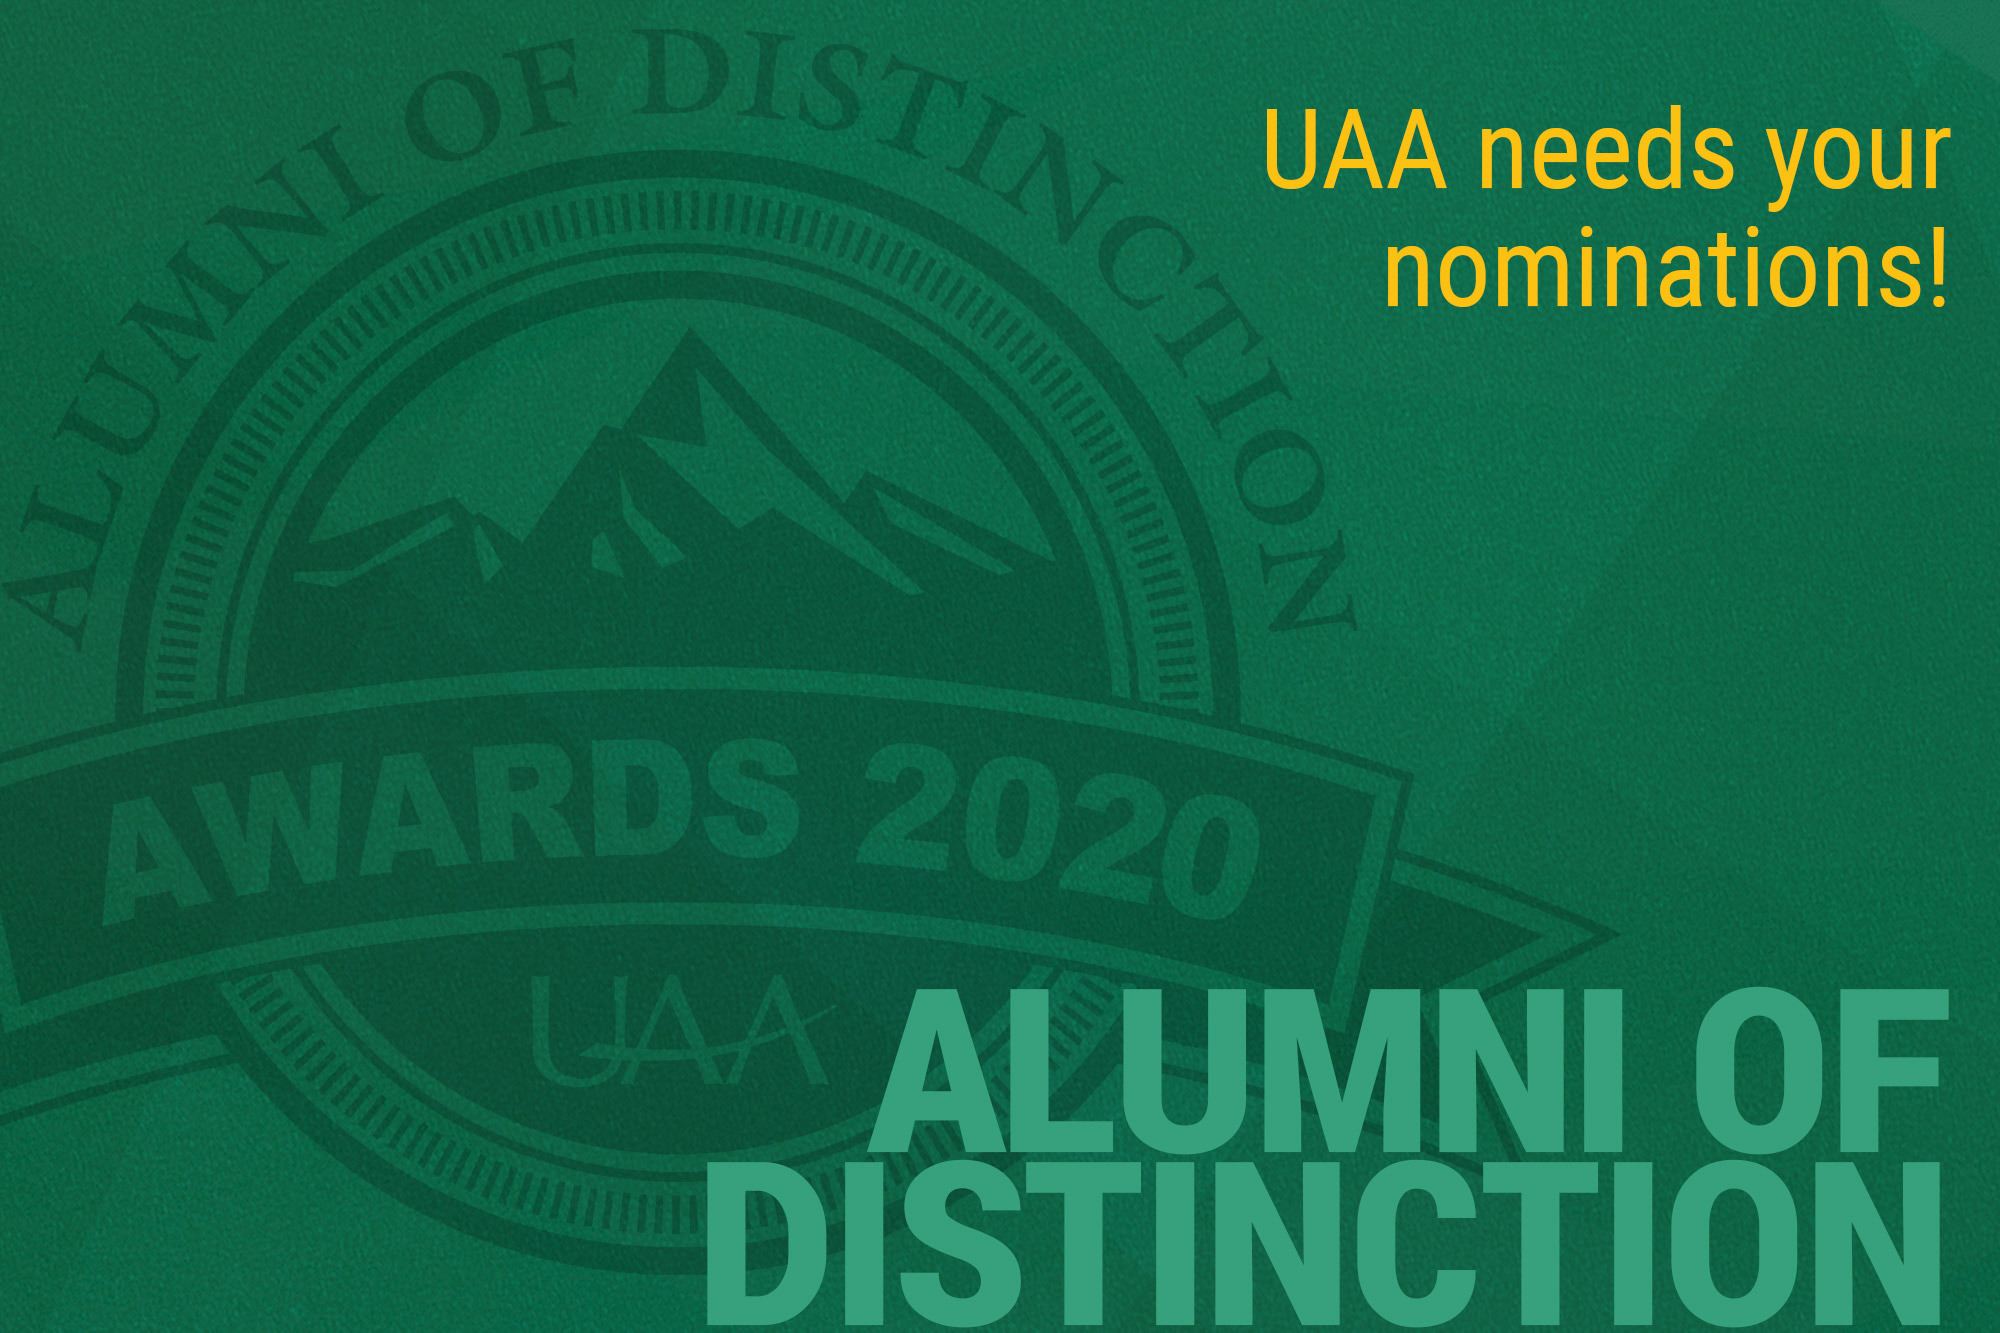 UAA needs your nominations for the 2020 Alumni of Distinction Awards!